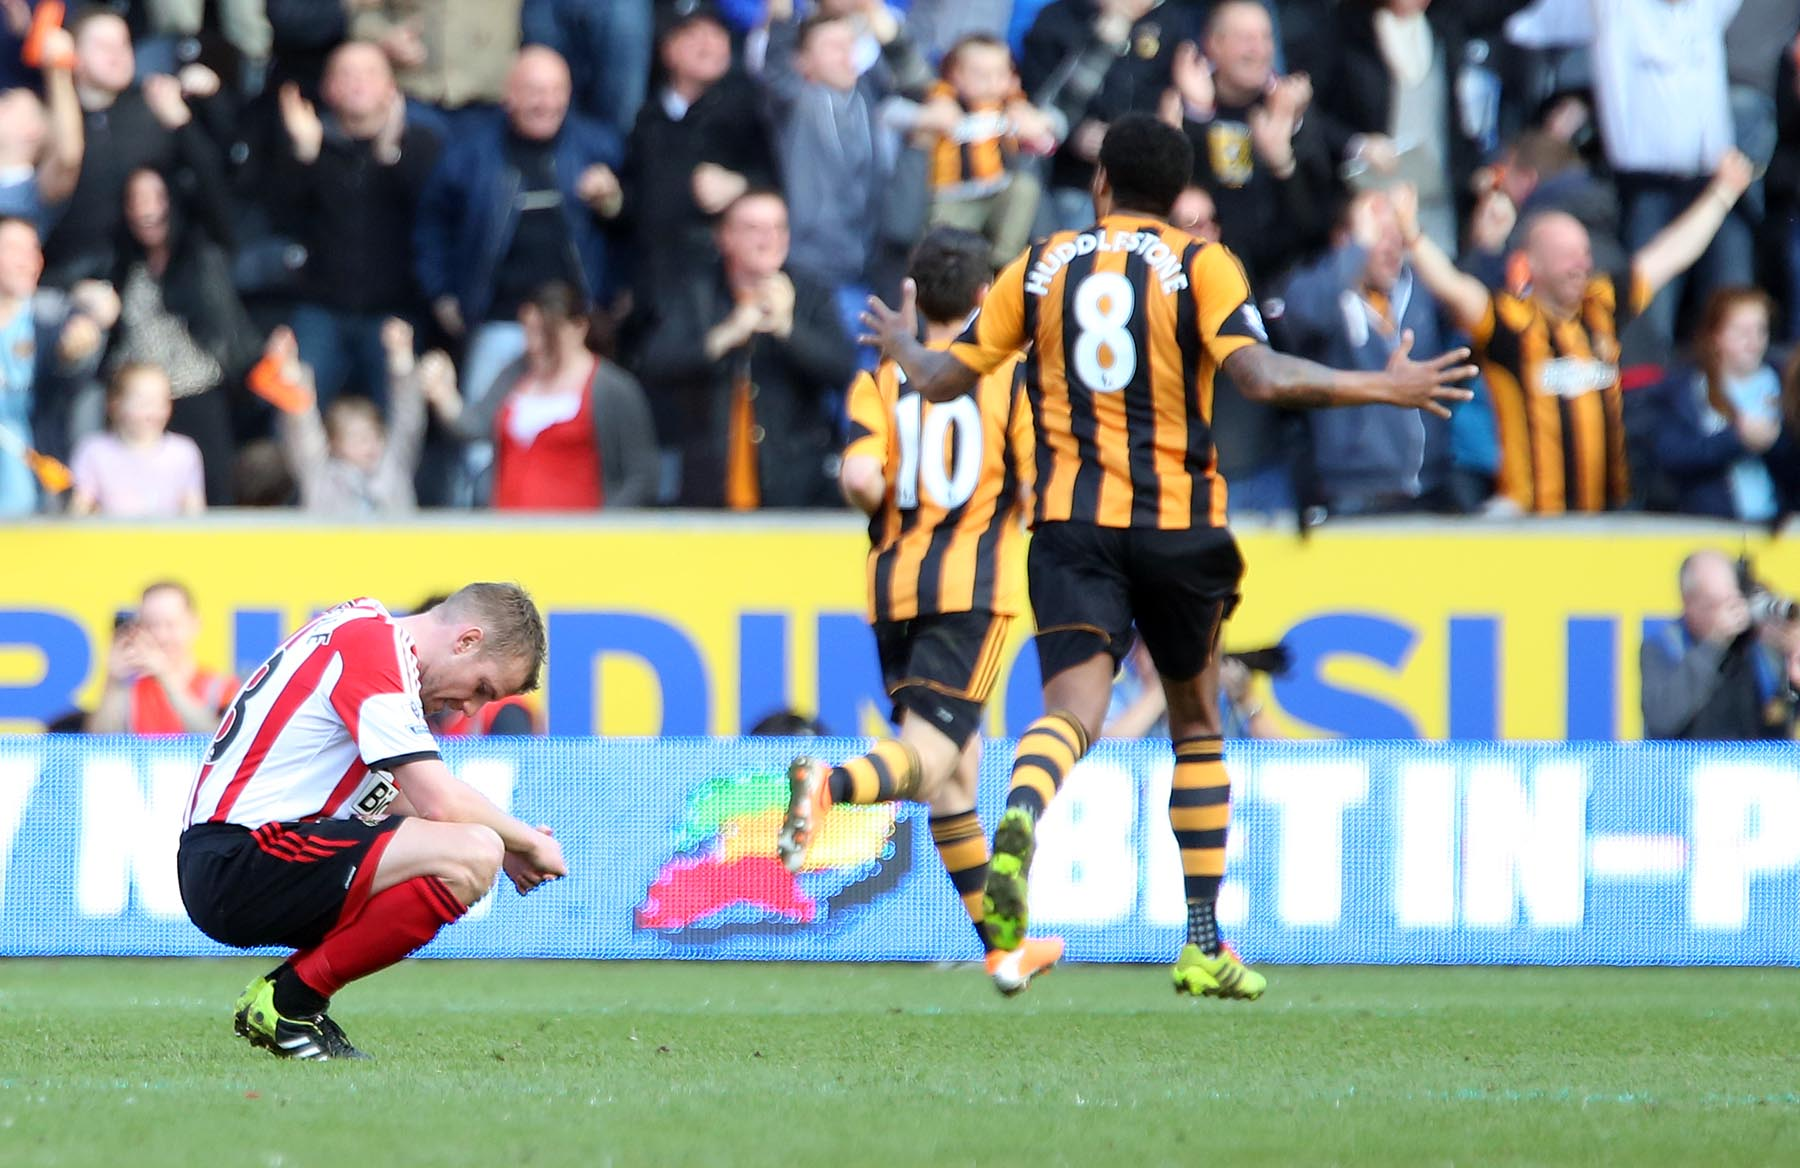 THE FALL GUY: Lee Cattermole is dejected after gifting Hull City their third goal on Sunday